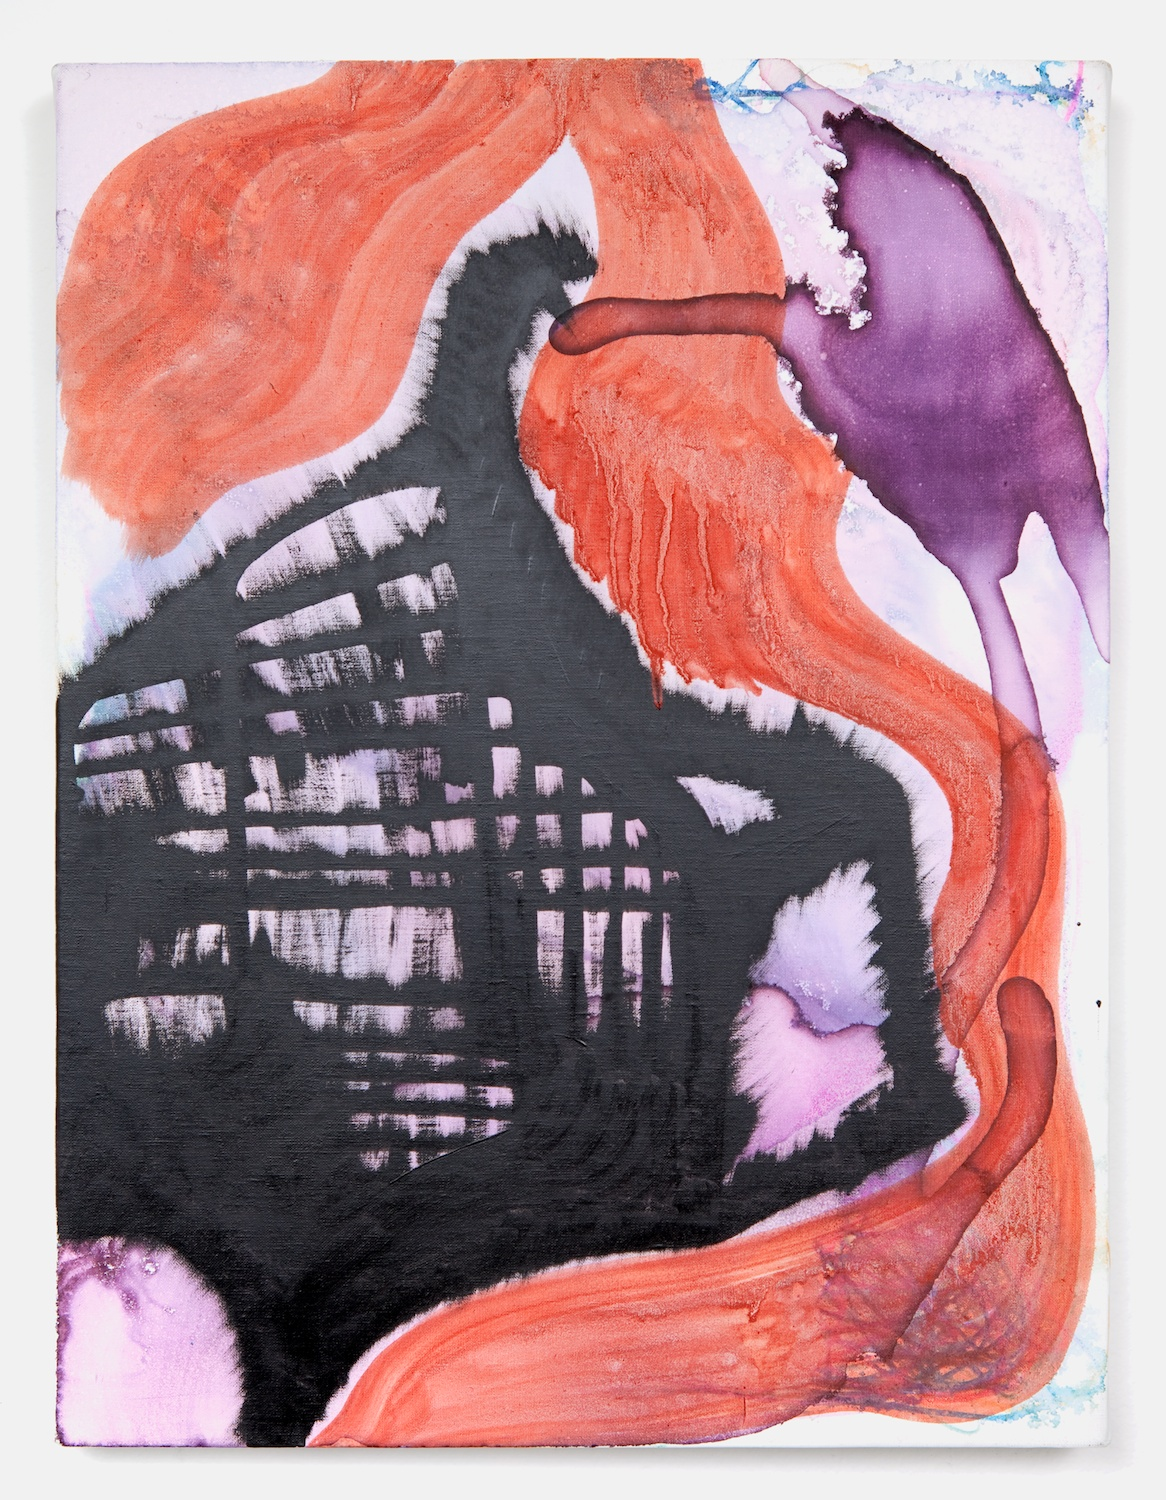 Joanne Greenbaum  Untitled  2011 Oil, acrylic and mixed media on linen 16h x 12w in JG027